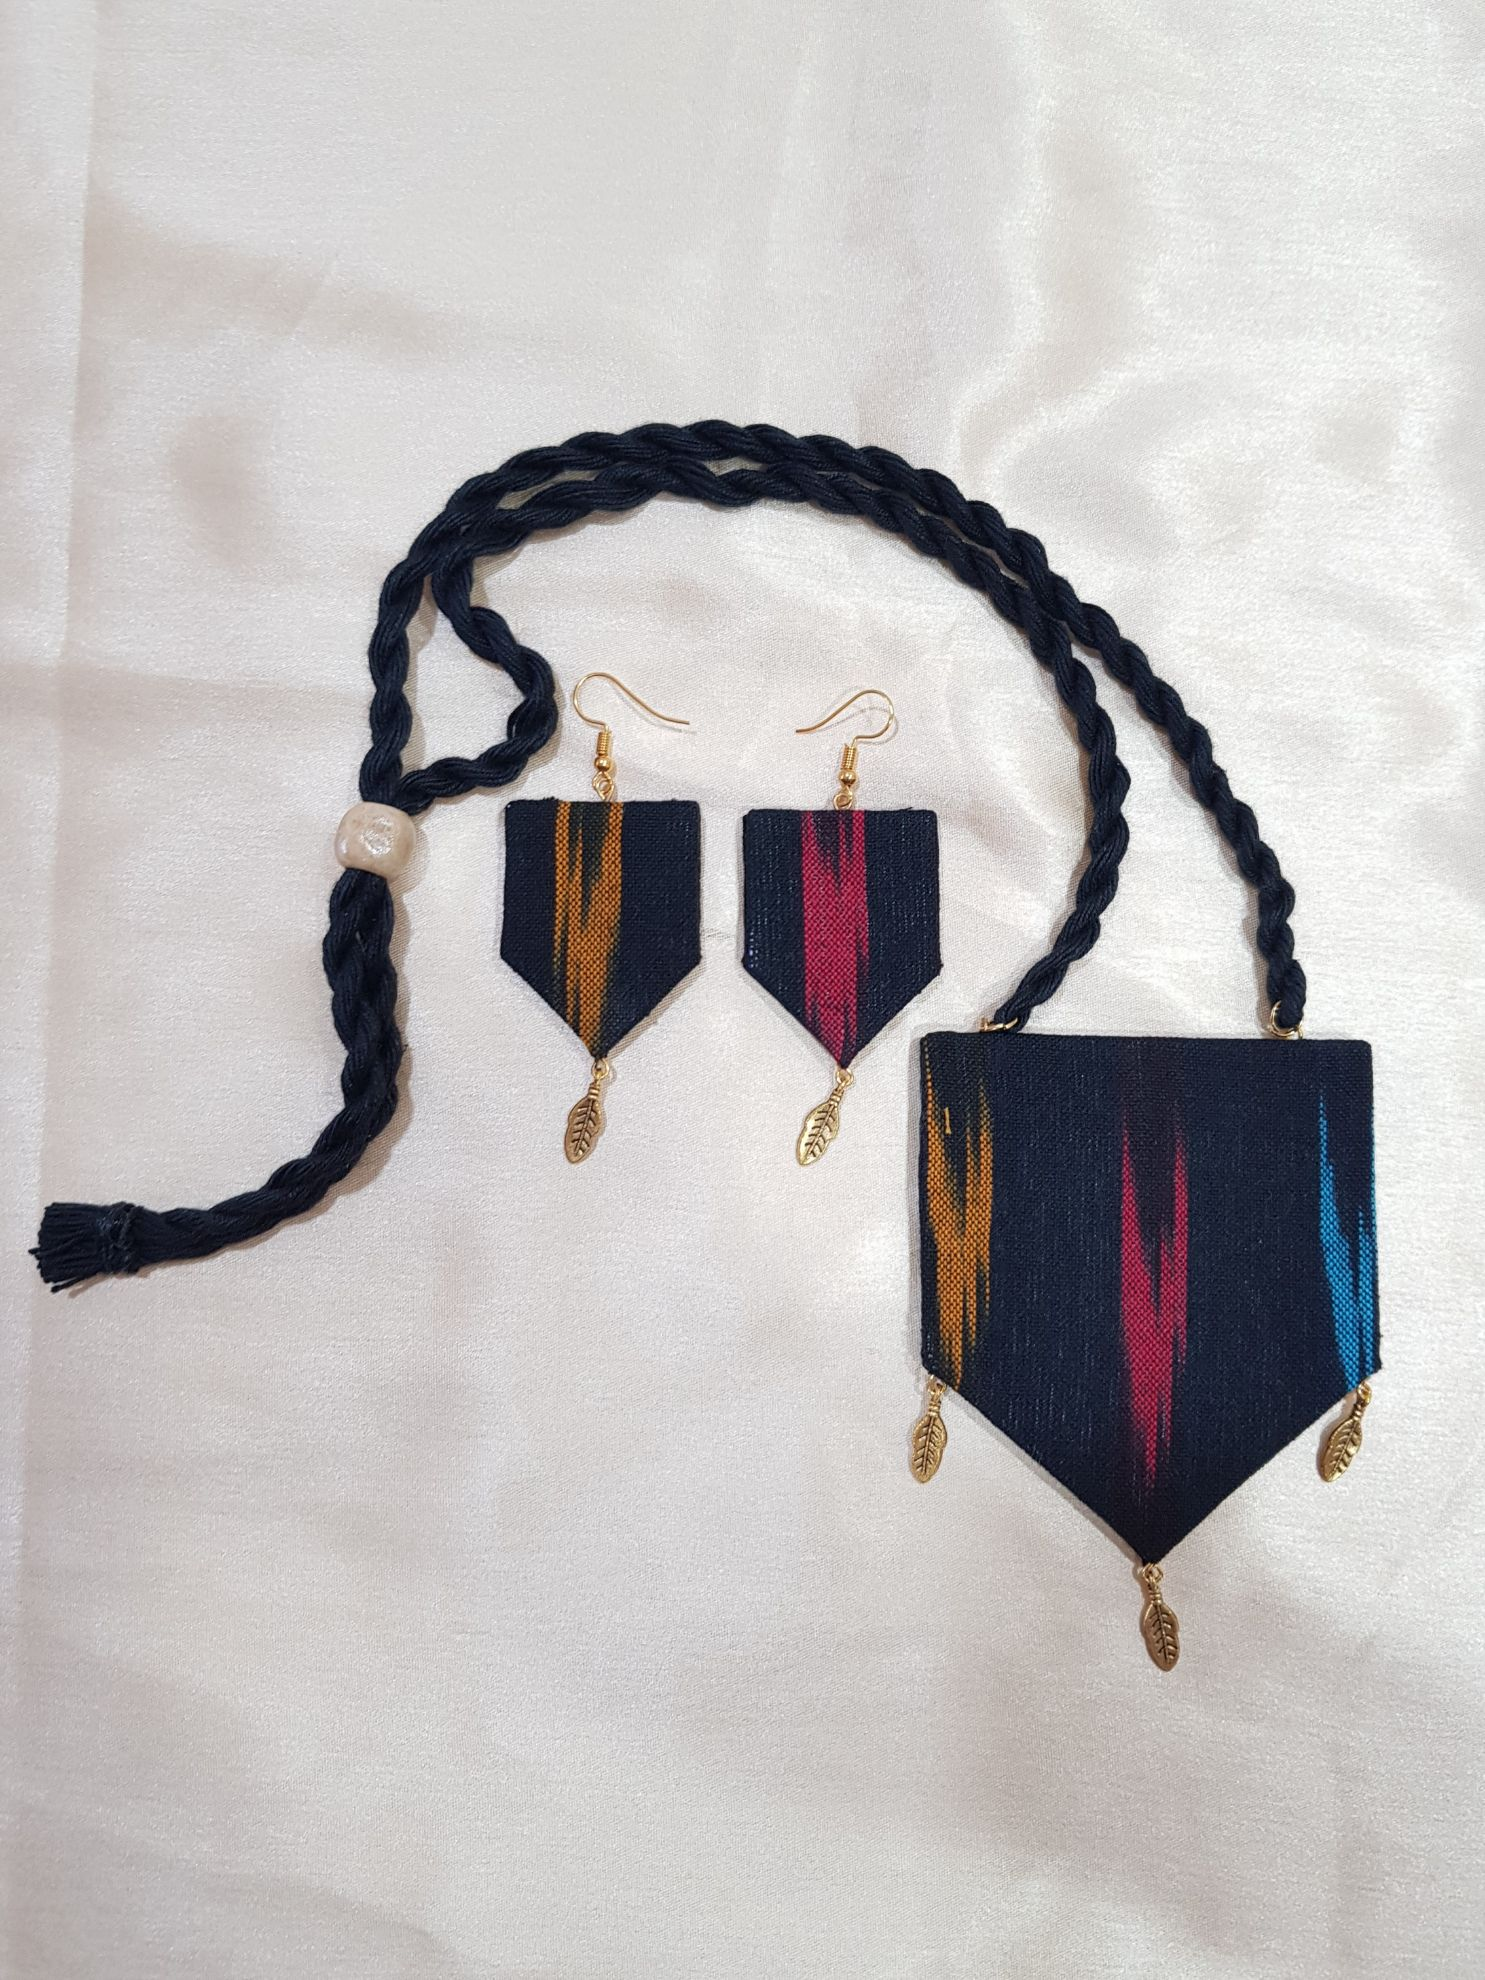 Handcrafted Ikat Fabric Jewellery Set Black : Picture